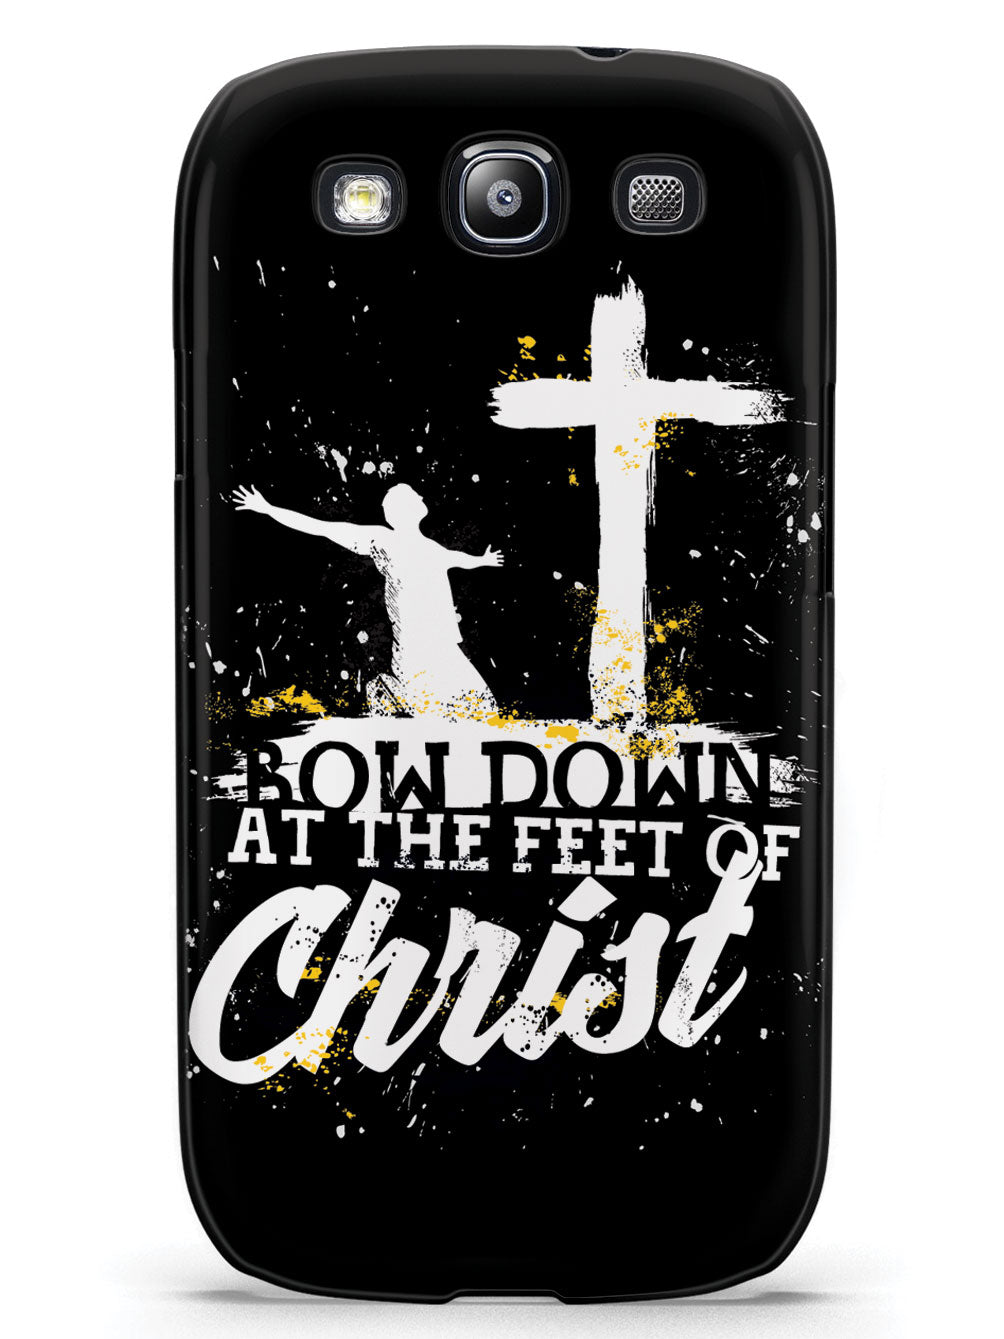 Bow Down At The Feet Of Christ - Black Case